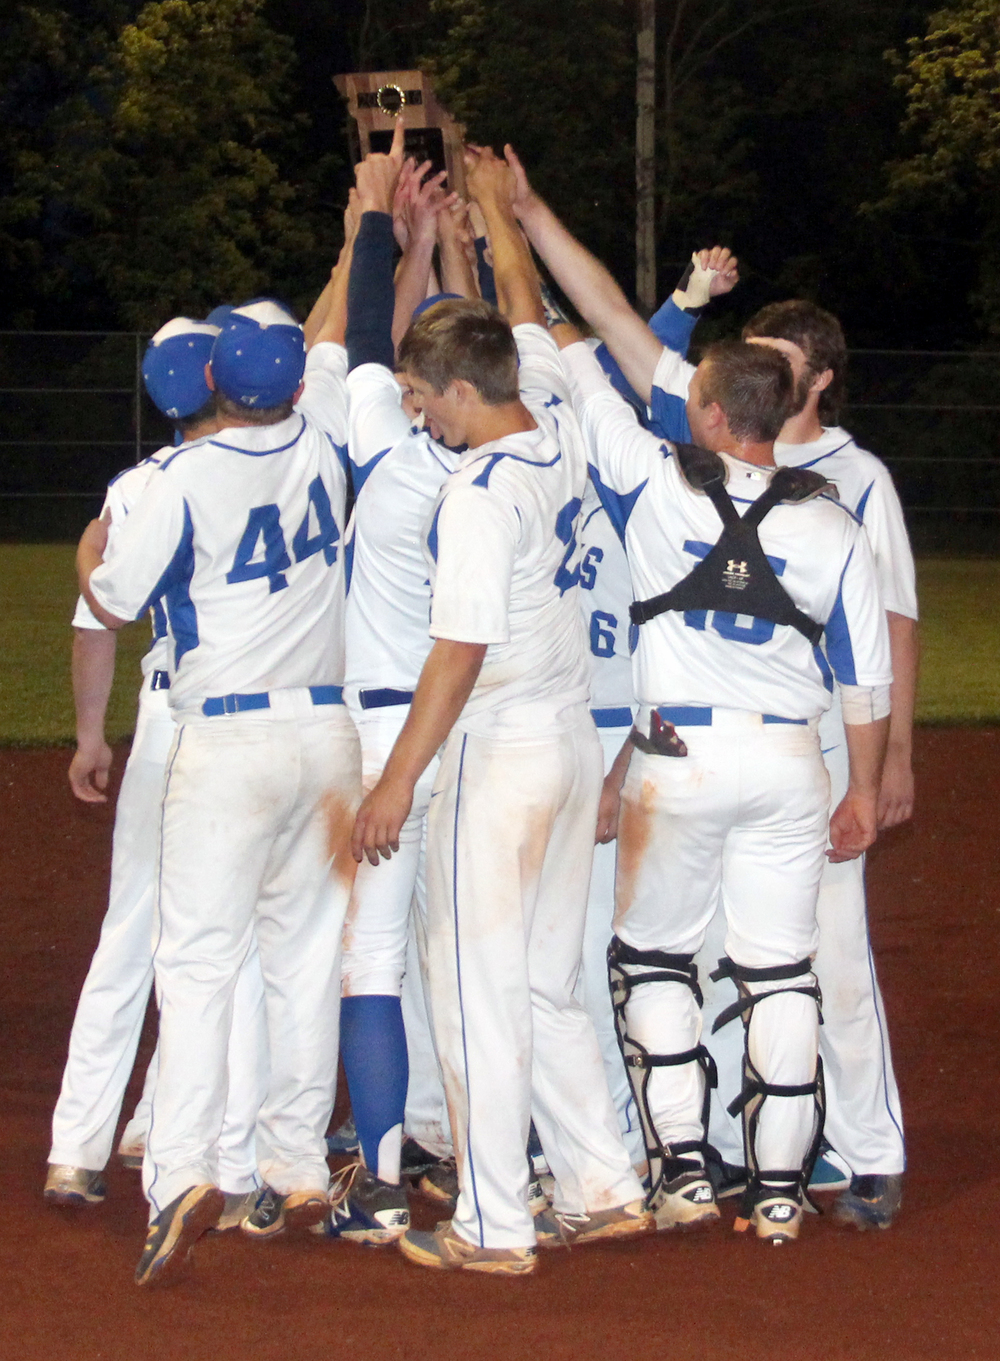 ROSS MARTIN/Citizen photo West Platte's players celebrate with the Class 2 District 16 championship plaque following a 5-3 win against Mid-Buchanan in 10 innings Thursday, May 19 at Benner Park in Weston, Mo.